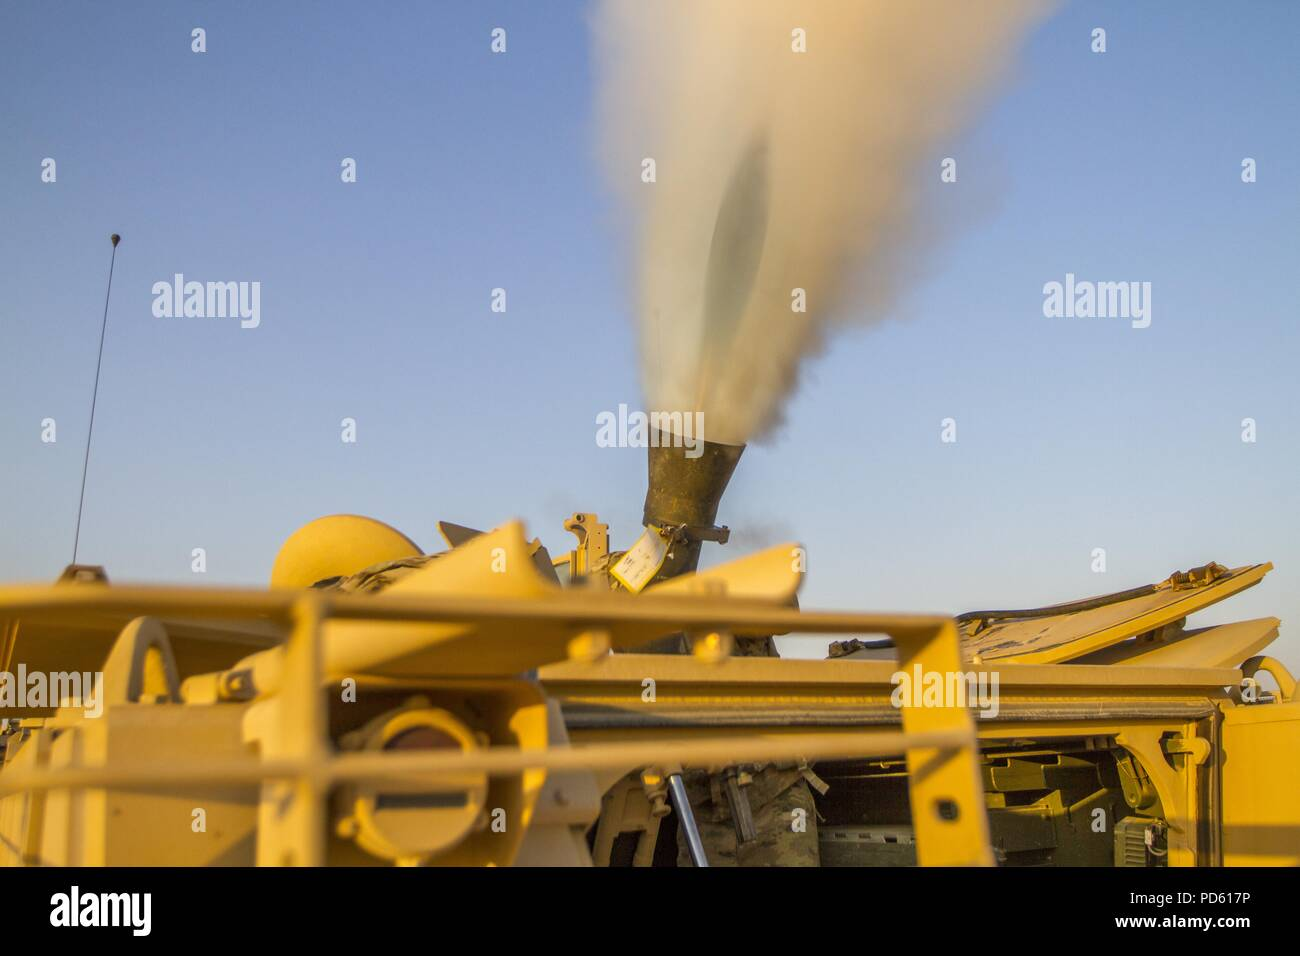 Headquarters Company, 1st Battalion, 155th Infantry Regiment, 155th Armored Brigade Combat Team, Mississippi Army National Guard conducts a mortar live fire training exercise at a range near Camp Buehring, Kuwait, on Aug. 5, 2018, August 5, 2018. (U.S. Army National Guard photo illustration by Spc. Jovi Prevot). () - Stock Image